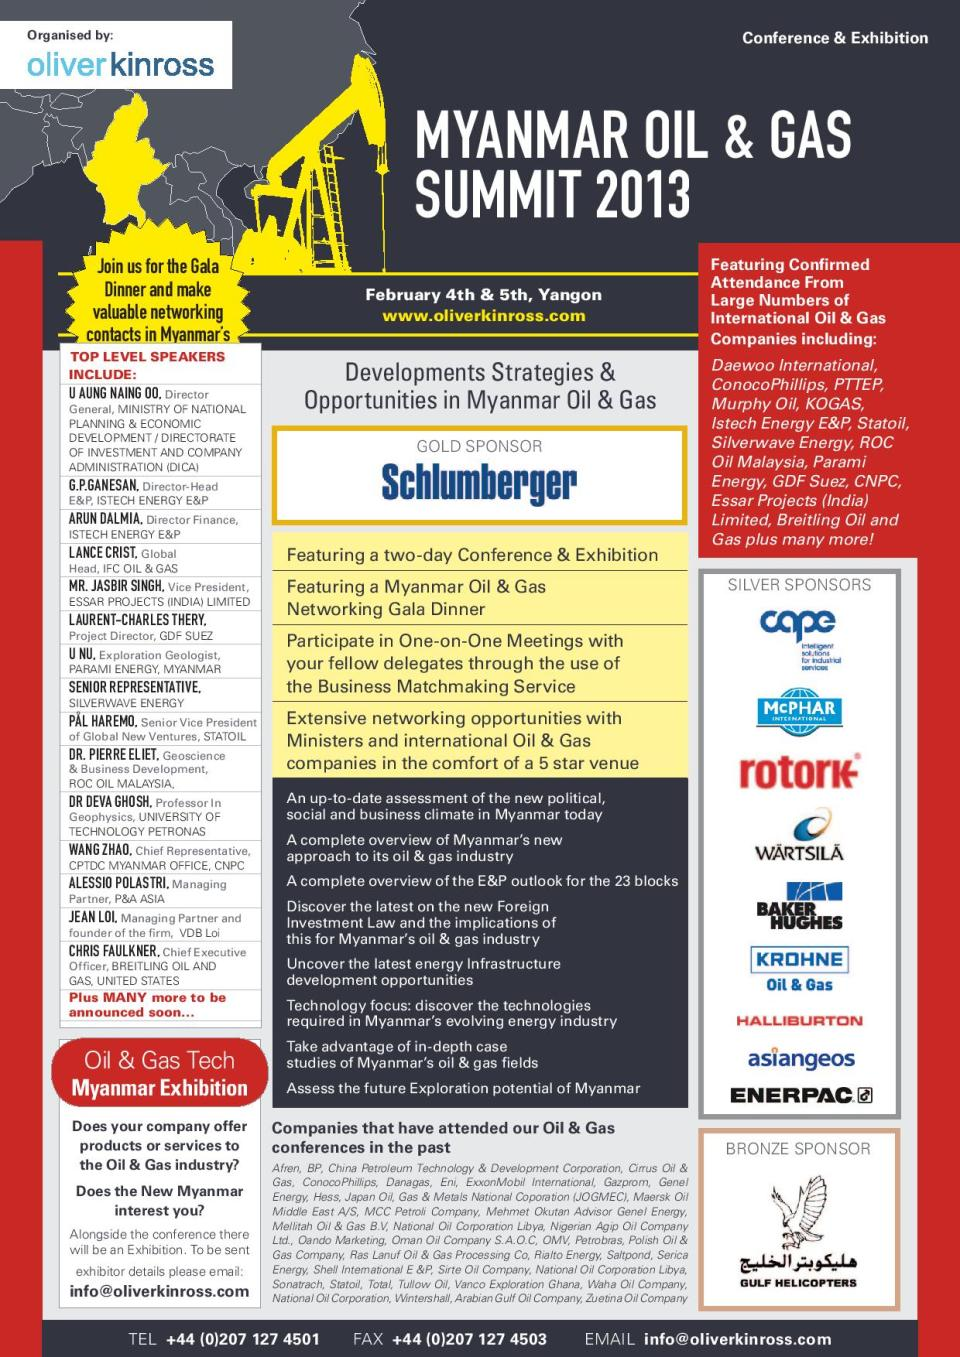 Myanmar Oil & Gas Summit 2013 (February 4th & 5th, Yangon).